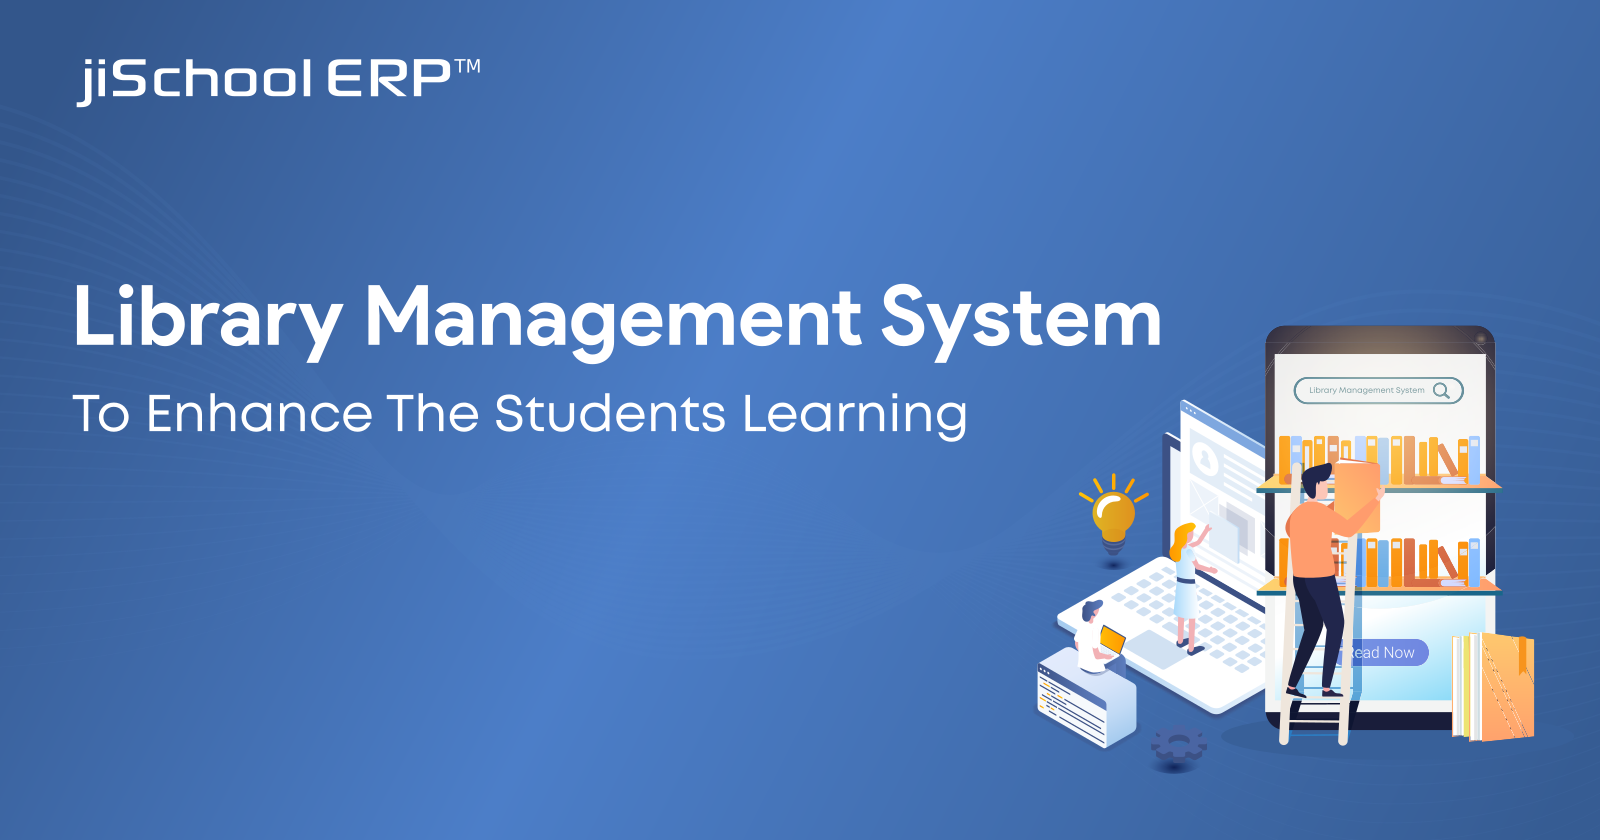 How does the Library Management System help to enhance Students Learning Expereince?